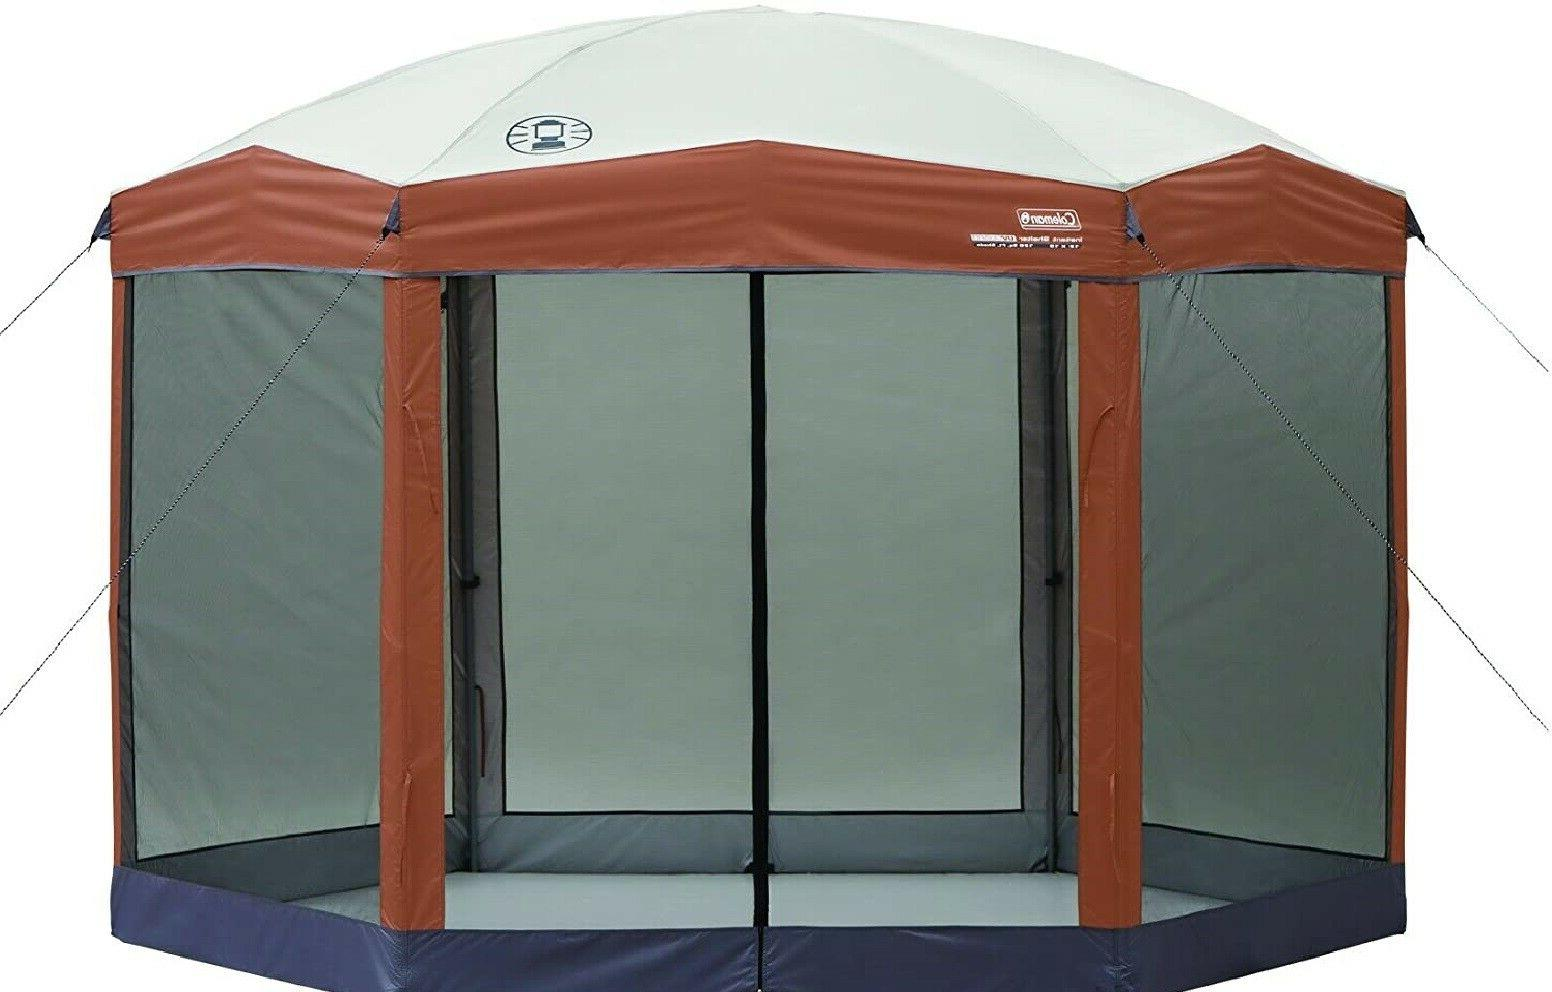 screened canopy tent with instant setup screen